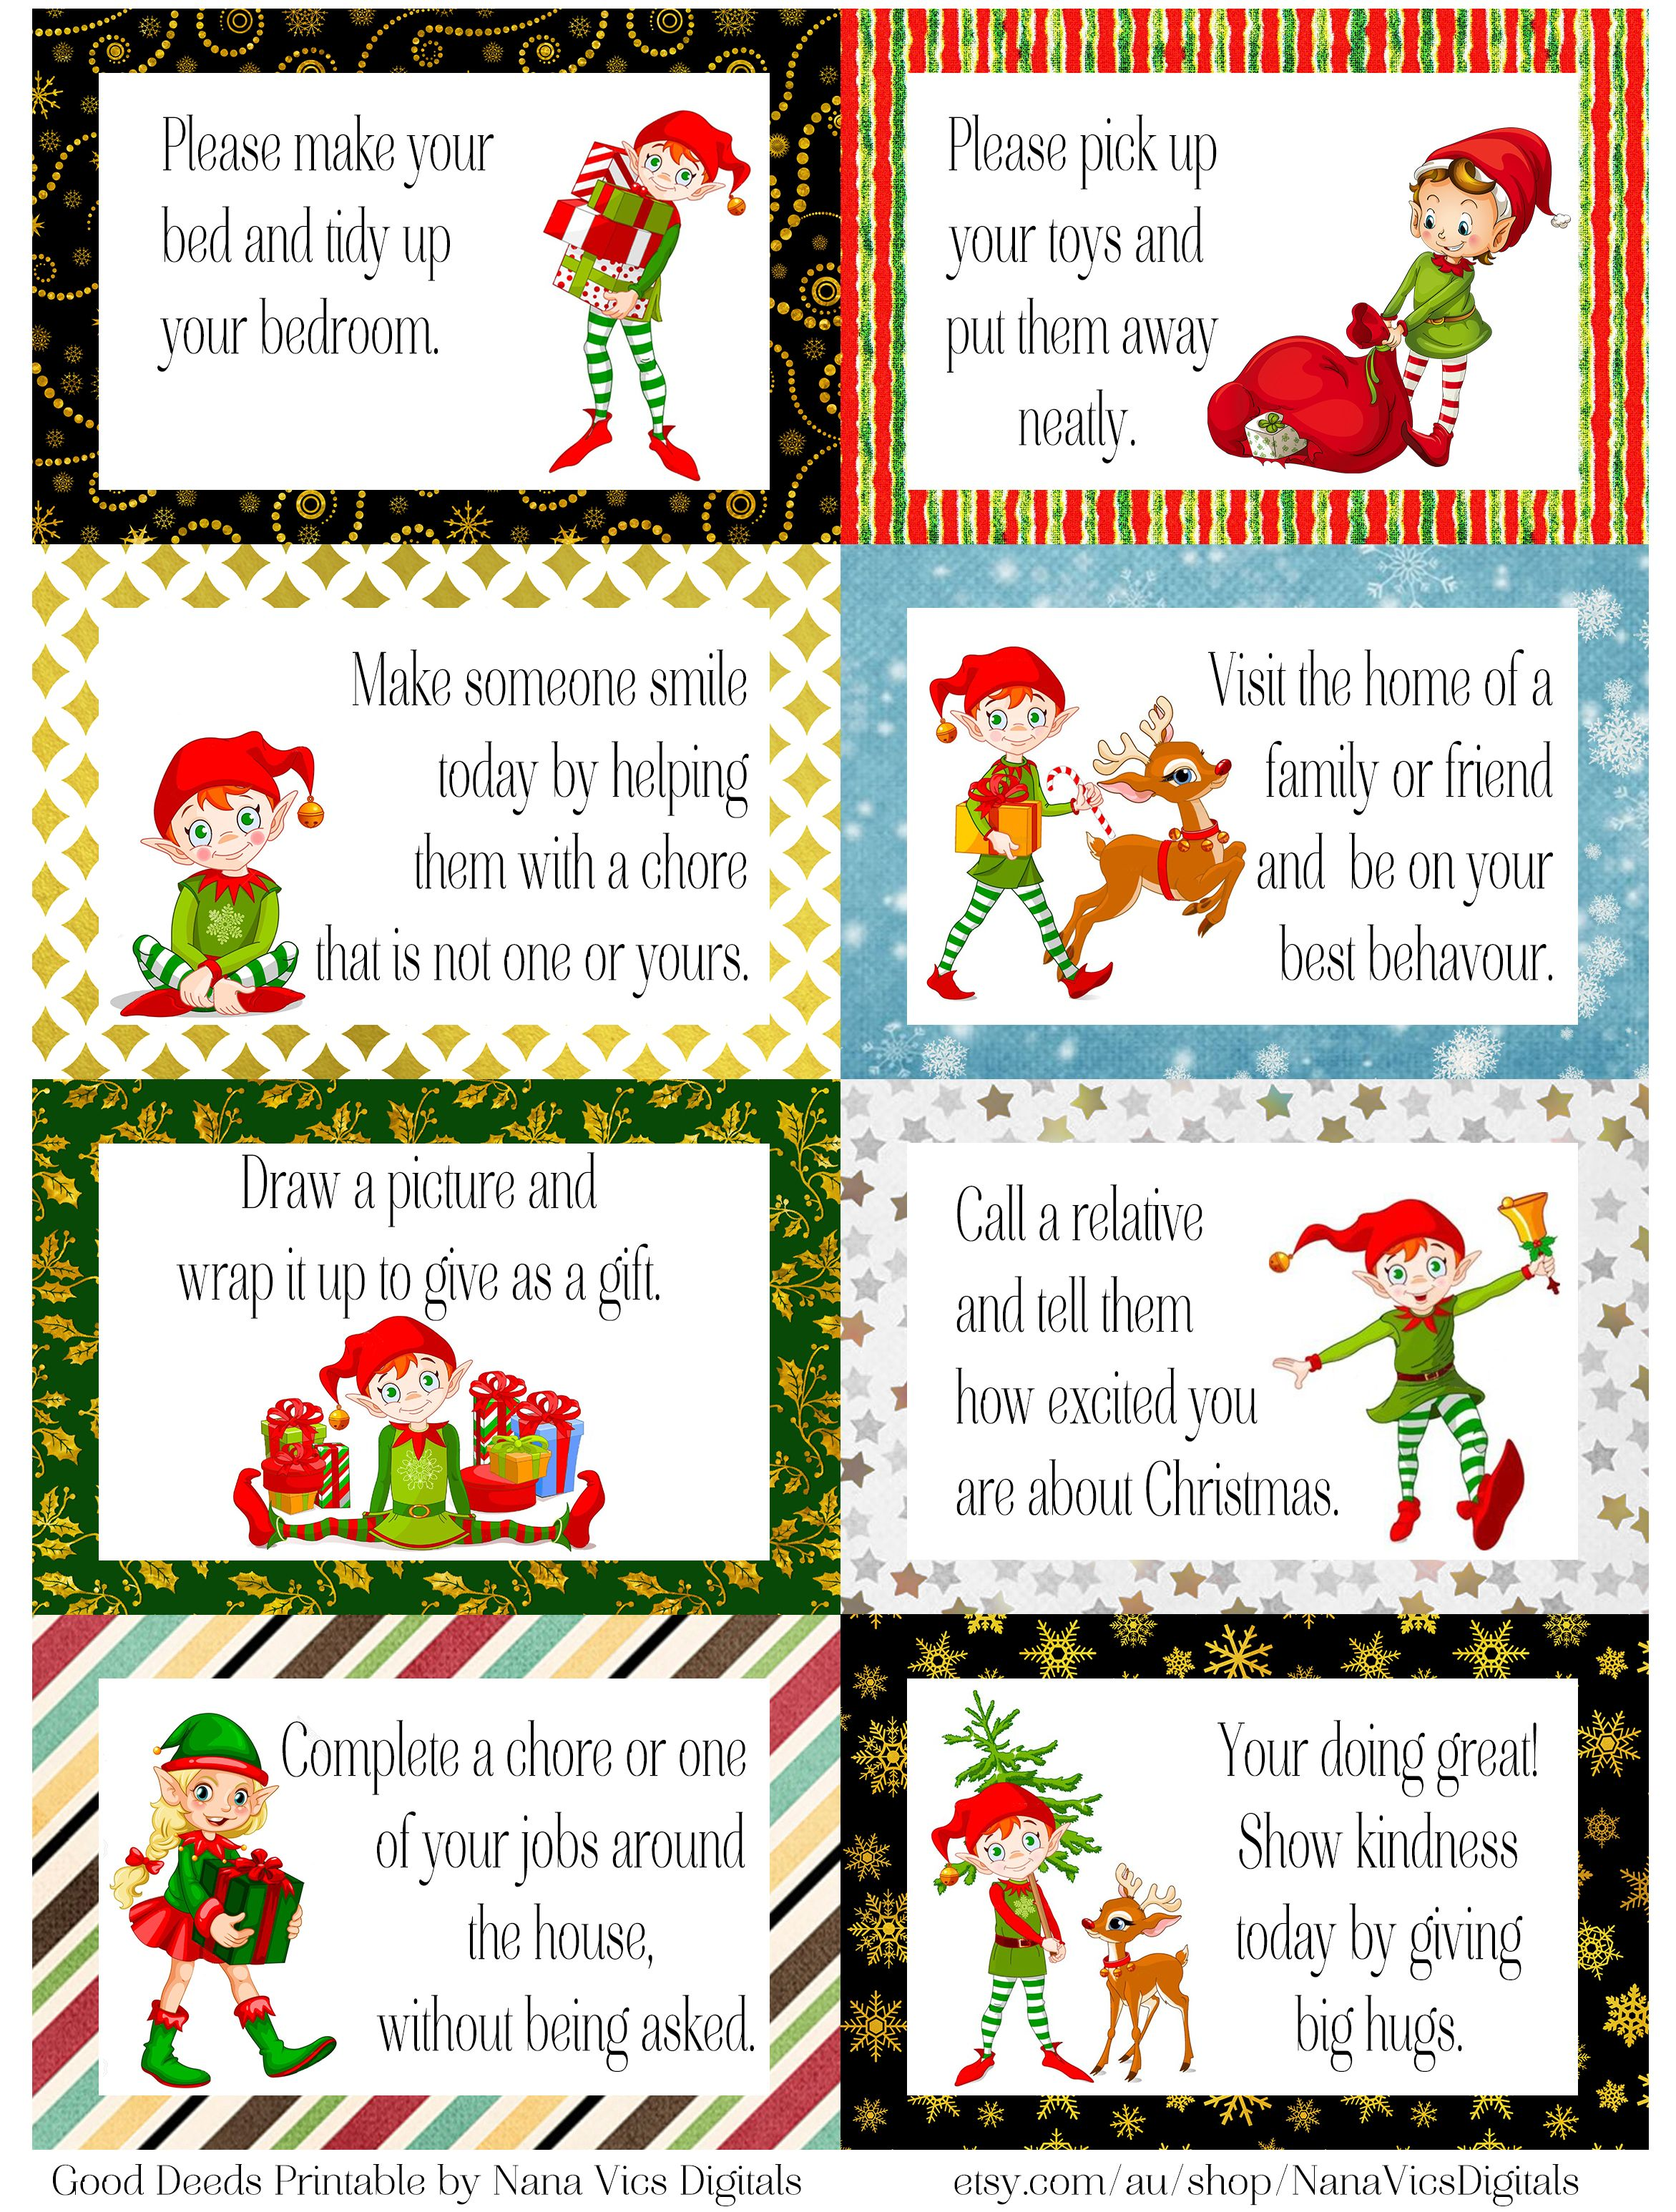 Free Printable Elf Good Deed Cards A4 Enjoy Elf On The Self Elf Printables Awesome Elf On The Shelf Ideas